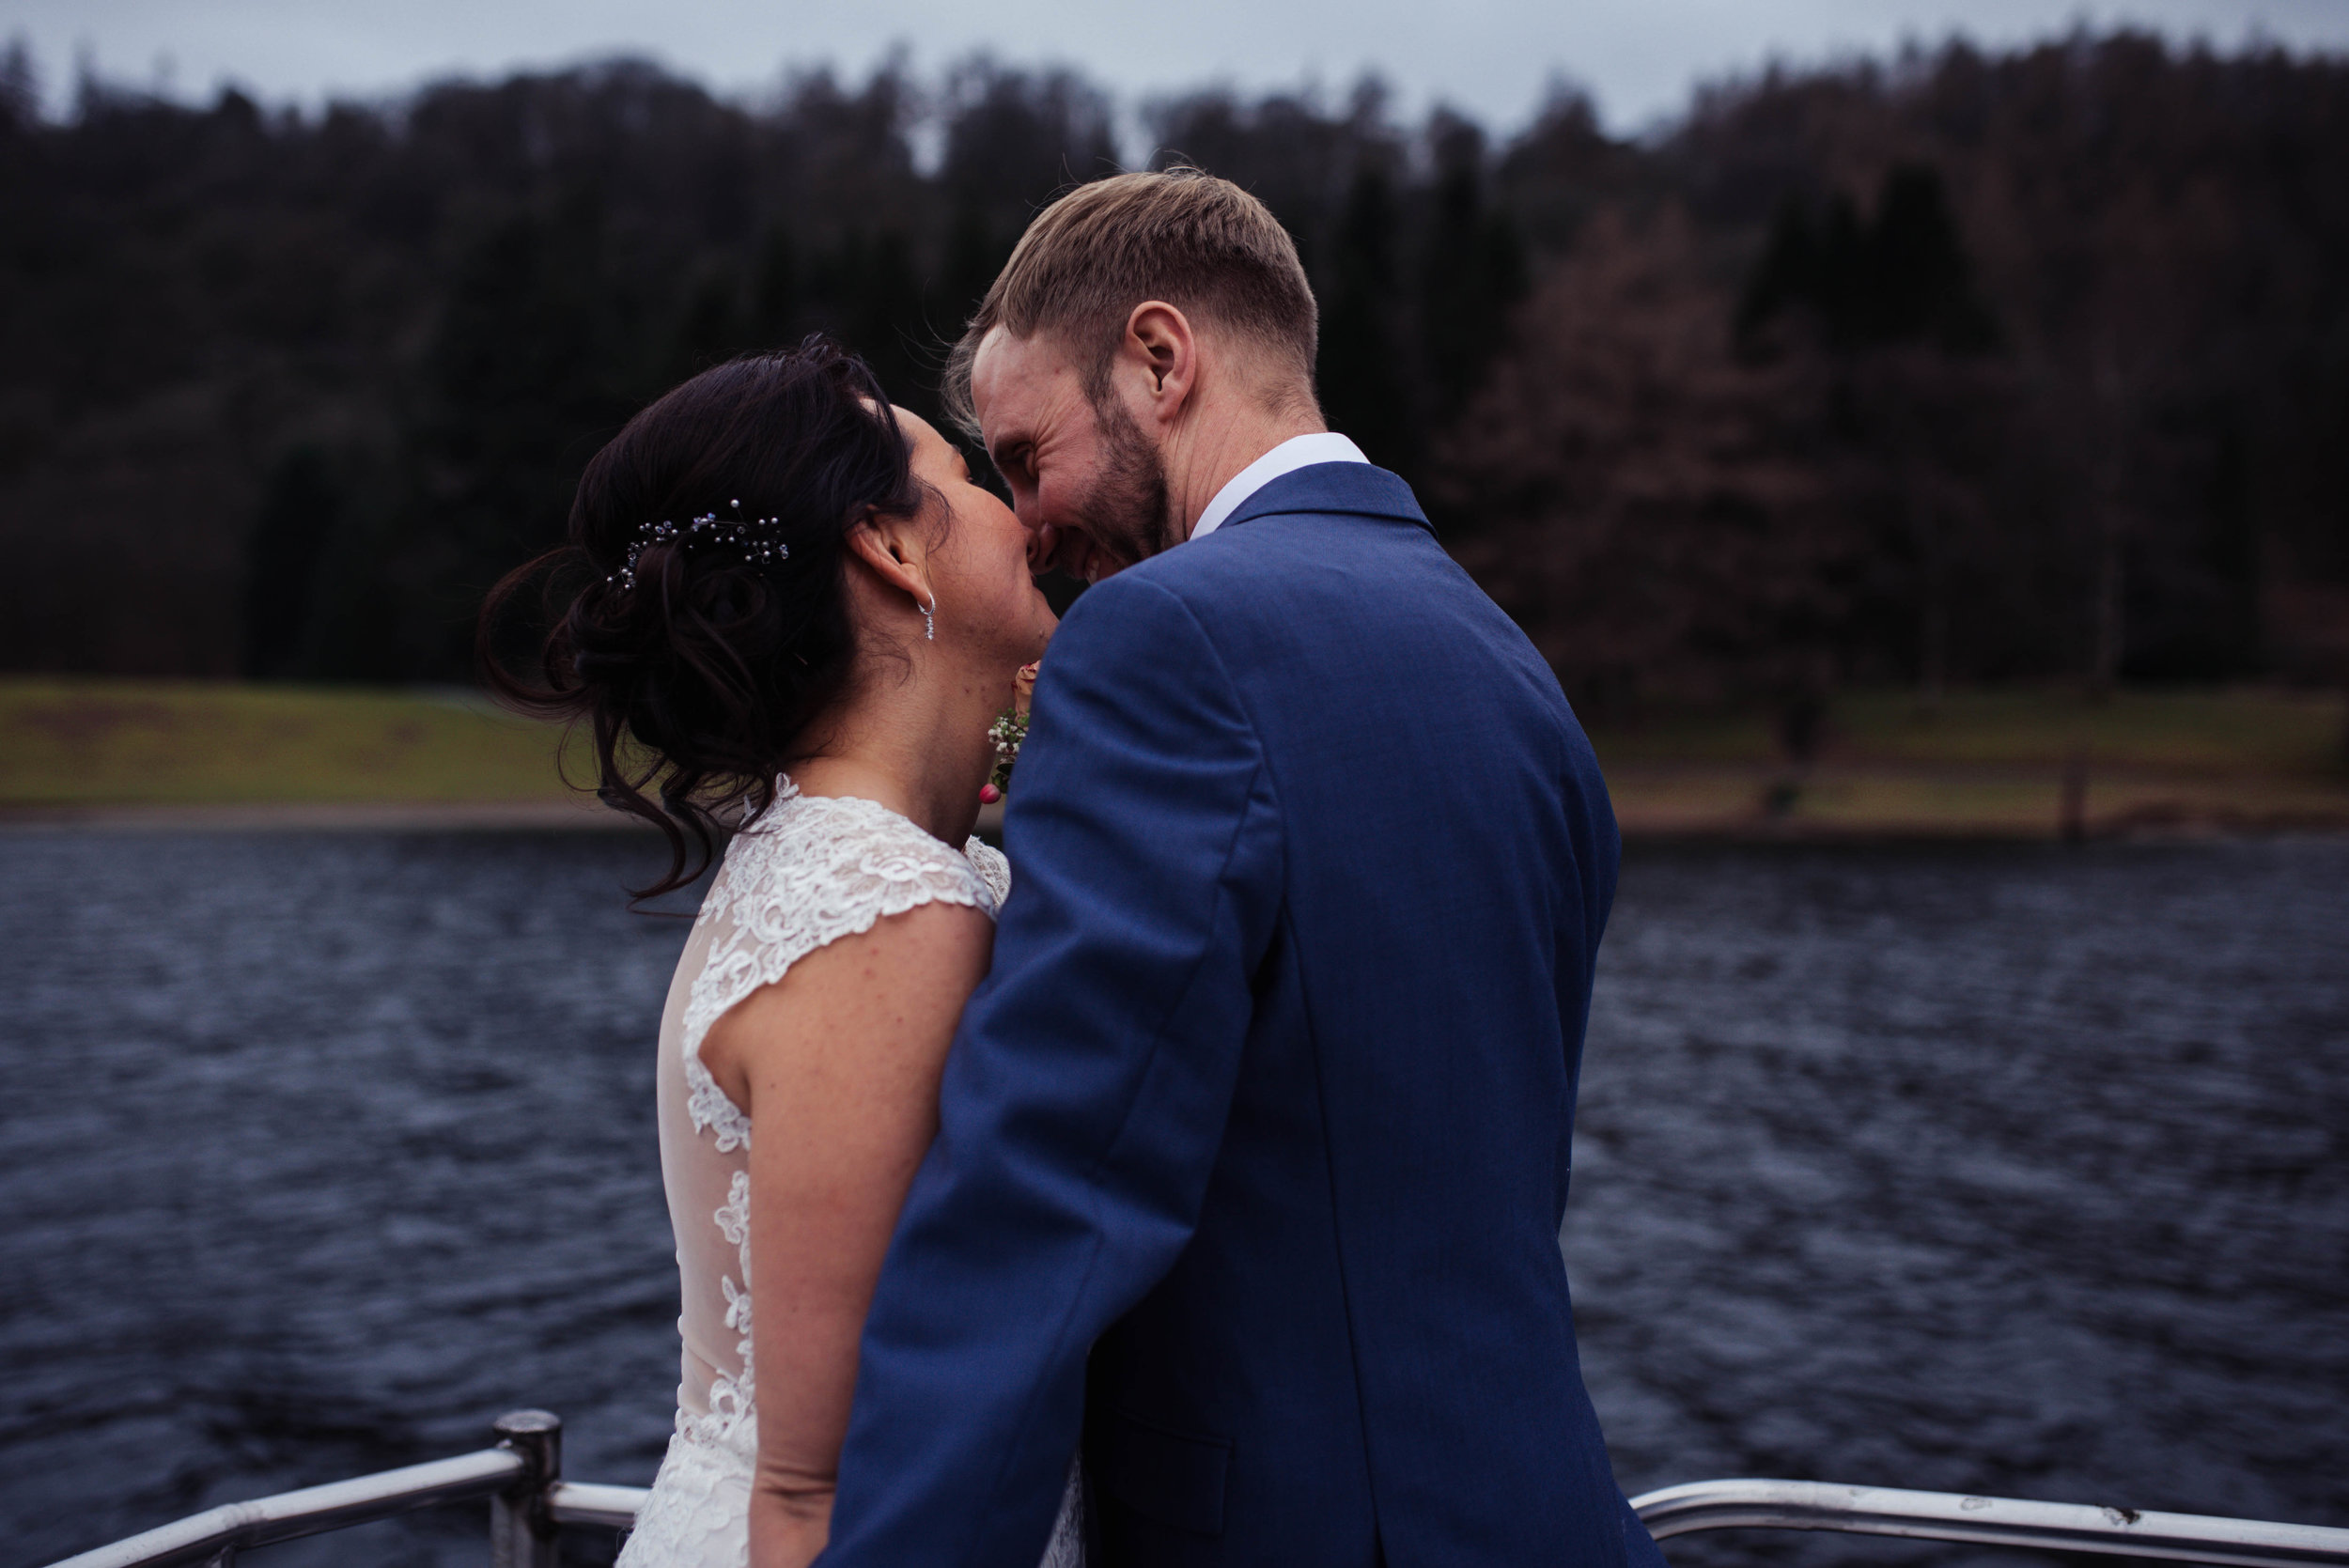 Bride and groom share a kiss facing away from the camera towards the lake